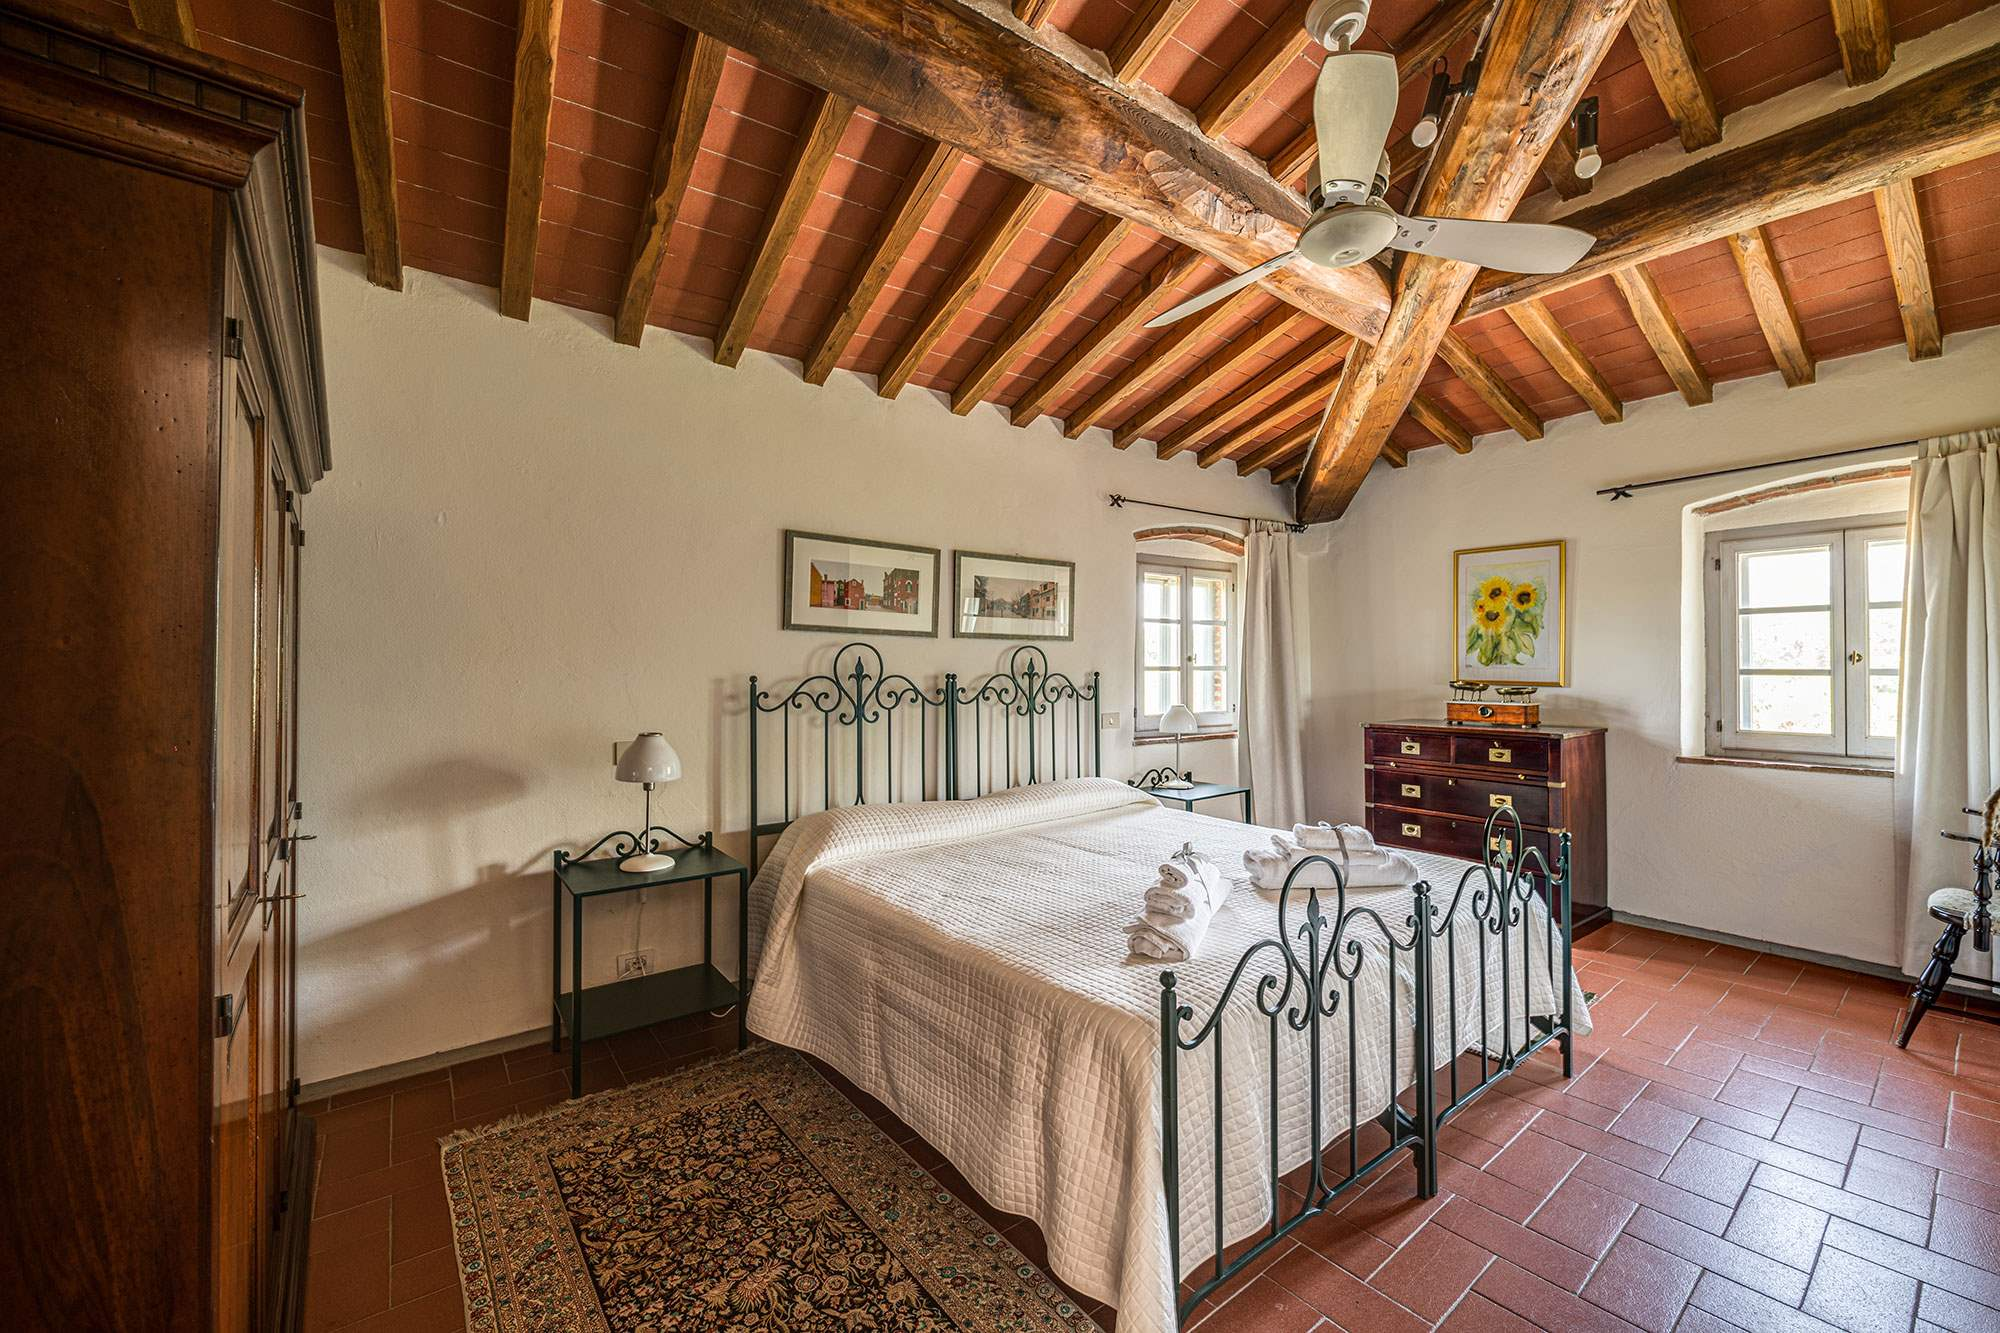 Villa Claudia, 5 Bedroom rate, 5 bedroom villa in Chianti & Countryside, Tuscany Photo #24